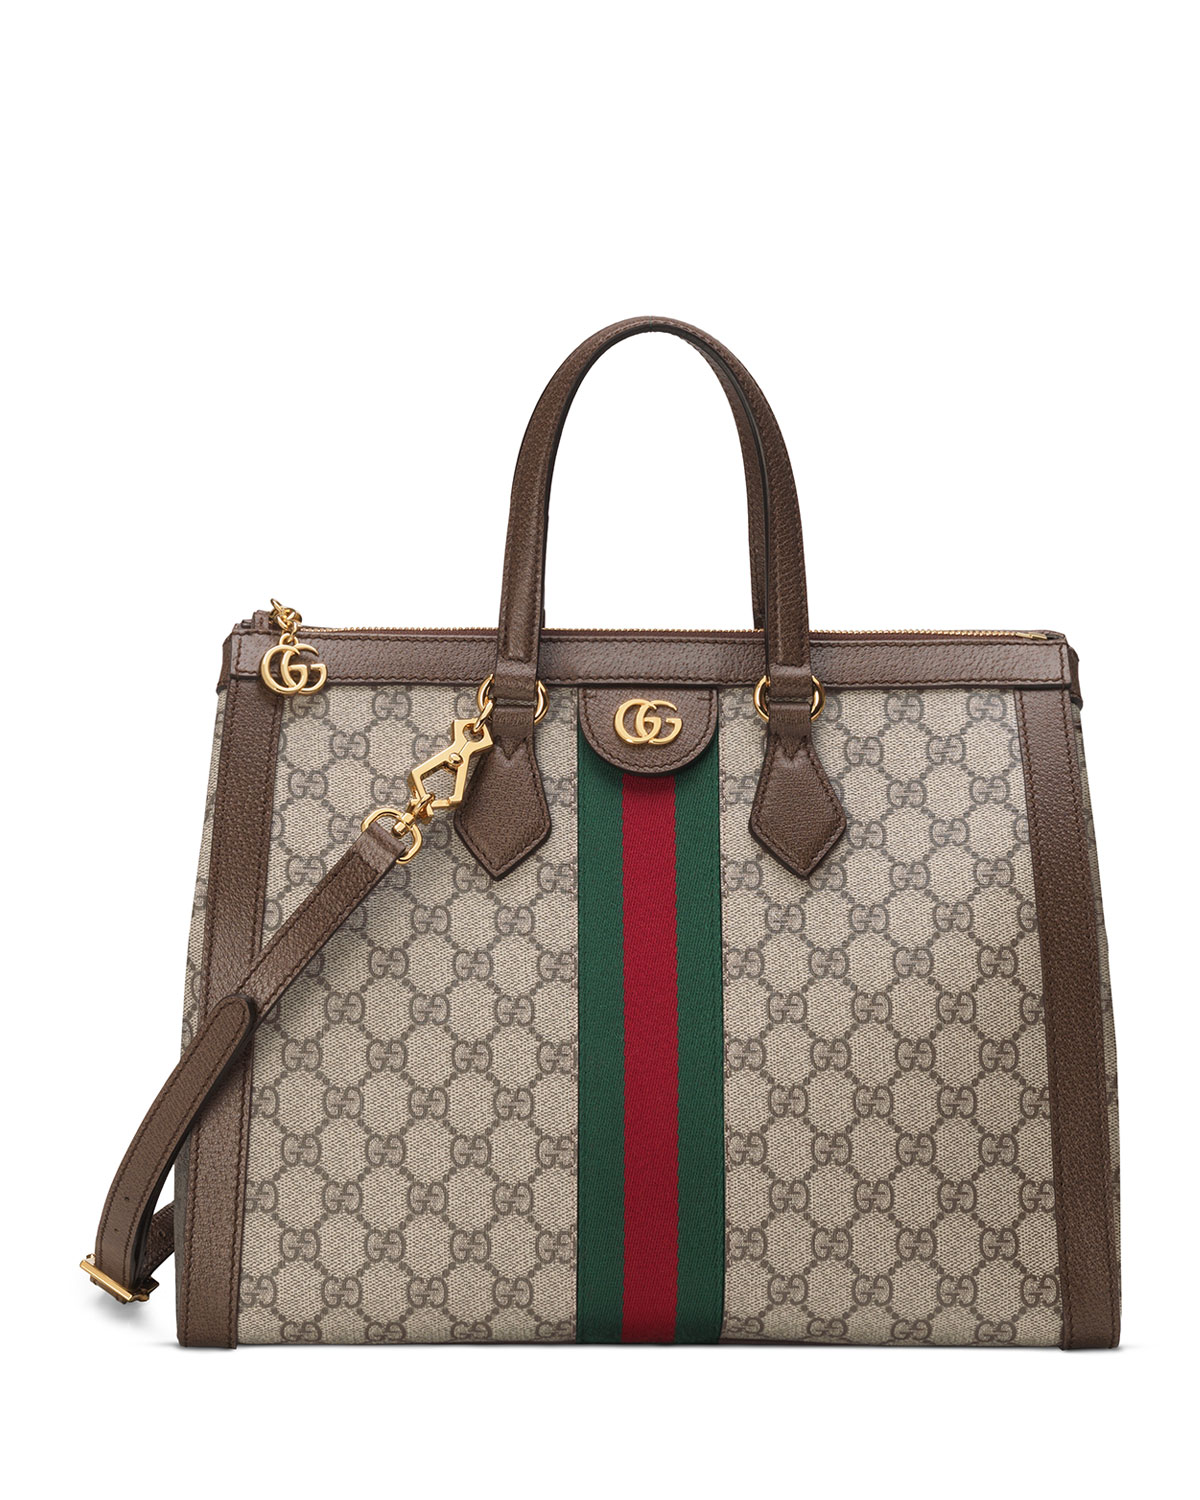 f40af9e42953 Gucci Ophidia Medium GG Supreme Canvas Web Top-Handle Tote Bag ...